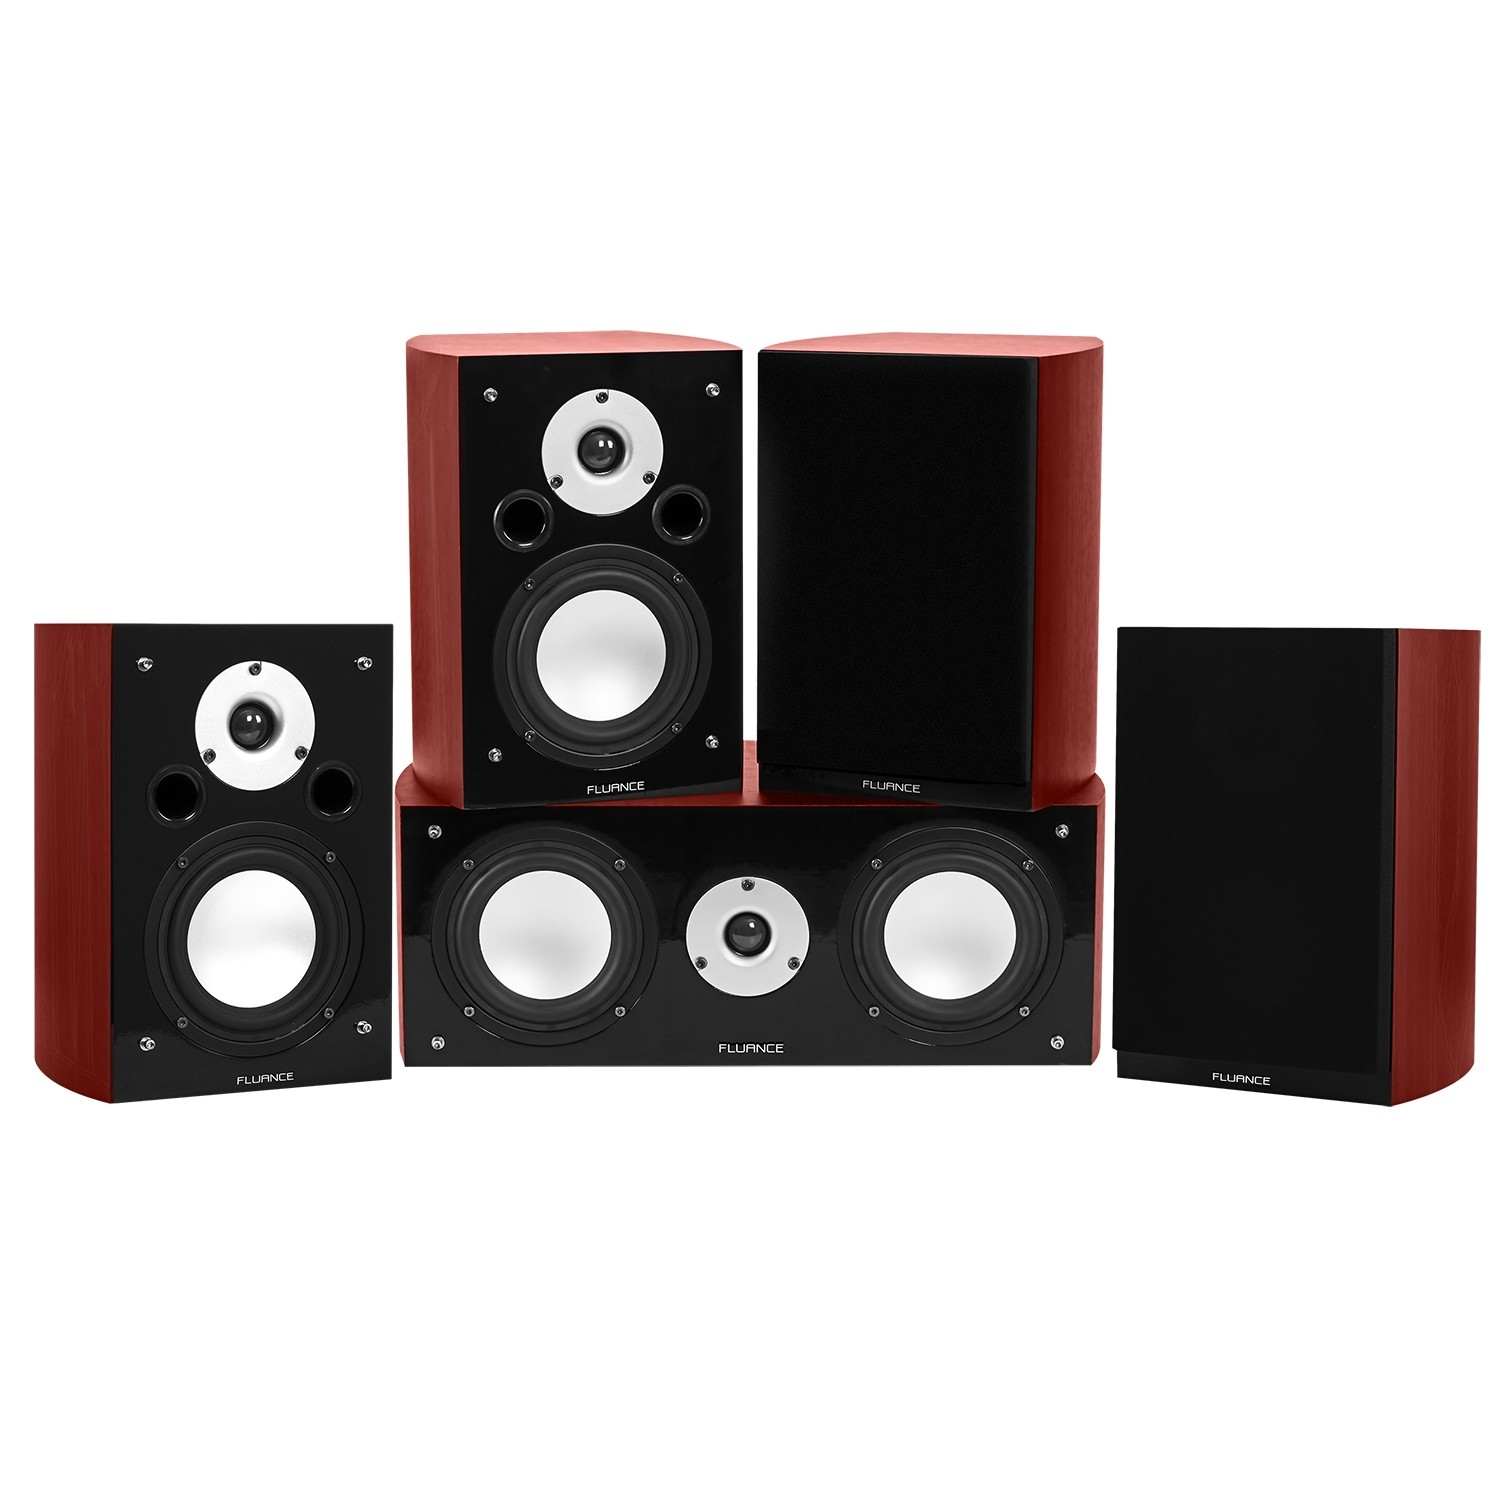 Reference Series Compact Surround Sound Home Theater 5.0 Channel Speaker System - Mahogany